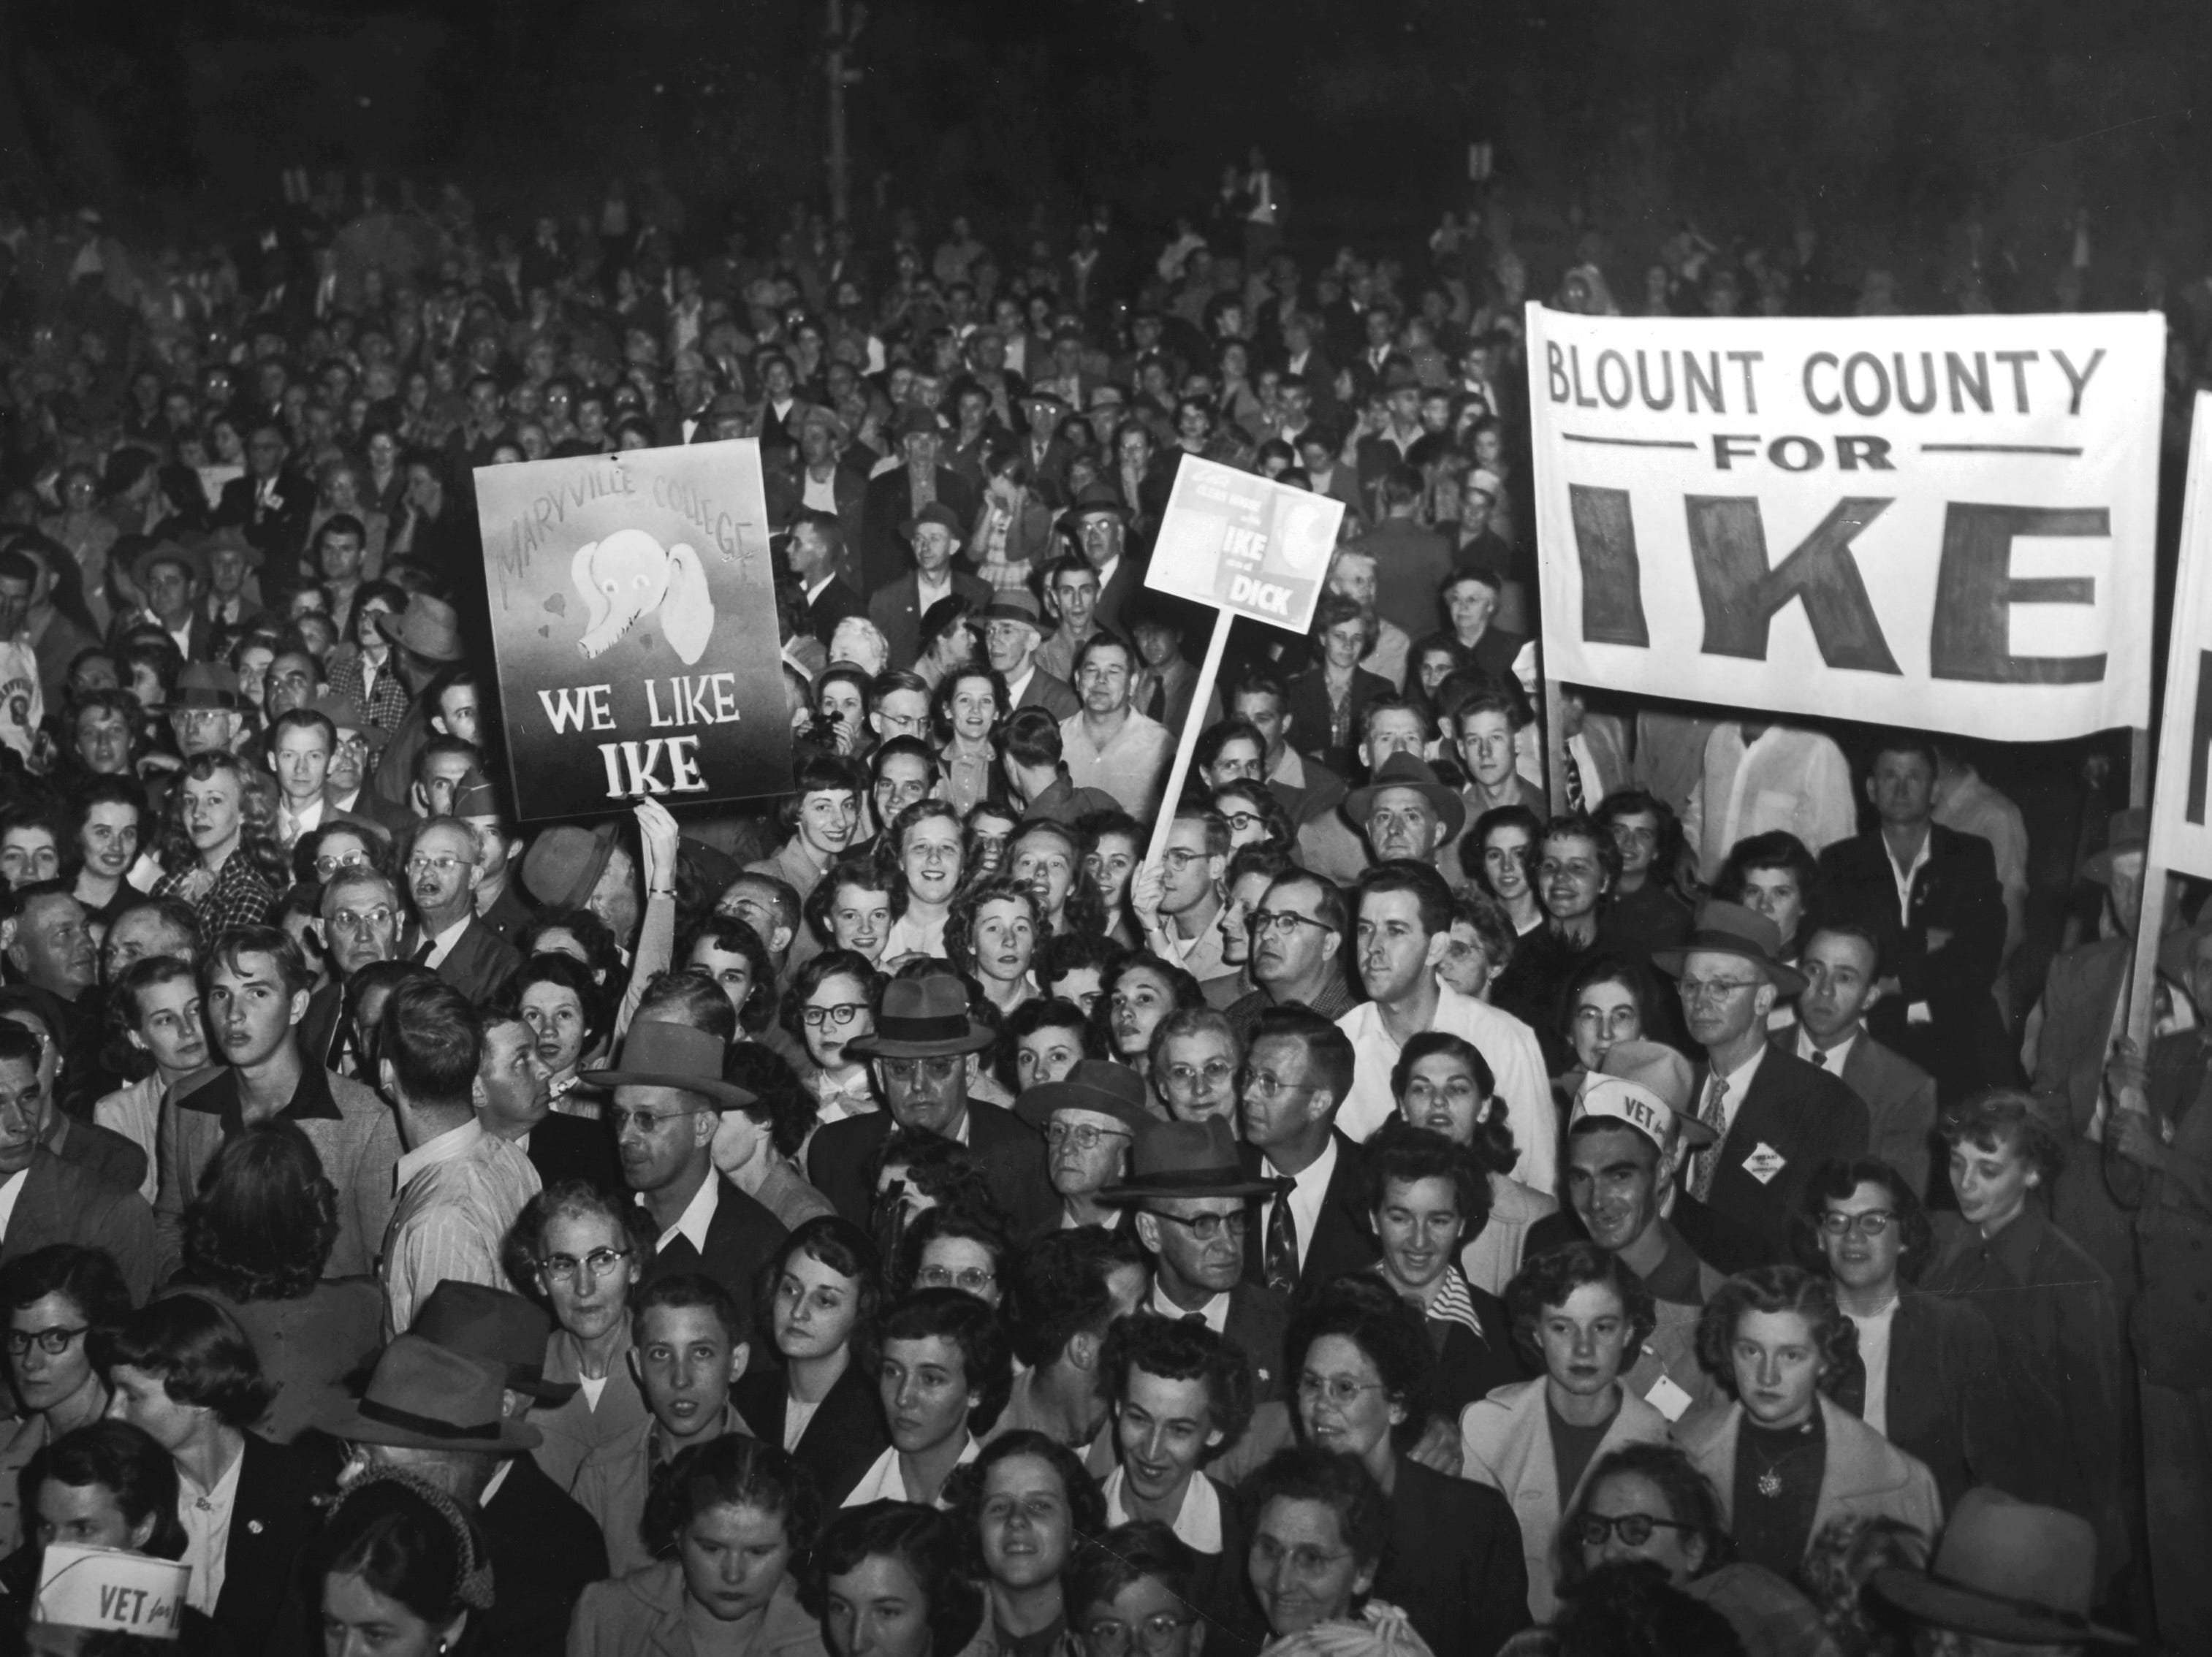 Supporters gather for a campaign appearance by Republican Presidential nominee Gen. Dwight D. Eisenhower Oct. 15, 1952 at Knoxville's Municipal Airport. The News Sentinel reported that the Associated Press and United Press wire services initially estimated 3,000 - 5,000 people attended the rally but boosted the number to 15,000 after state GOP Chairman Guy. L. Smith complained.